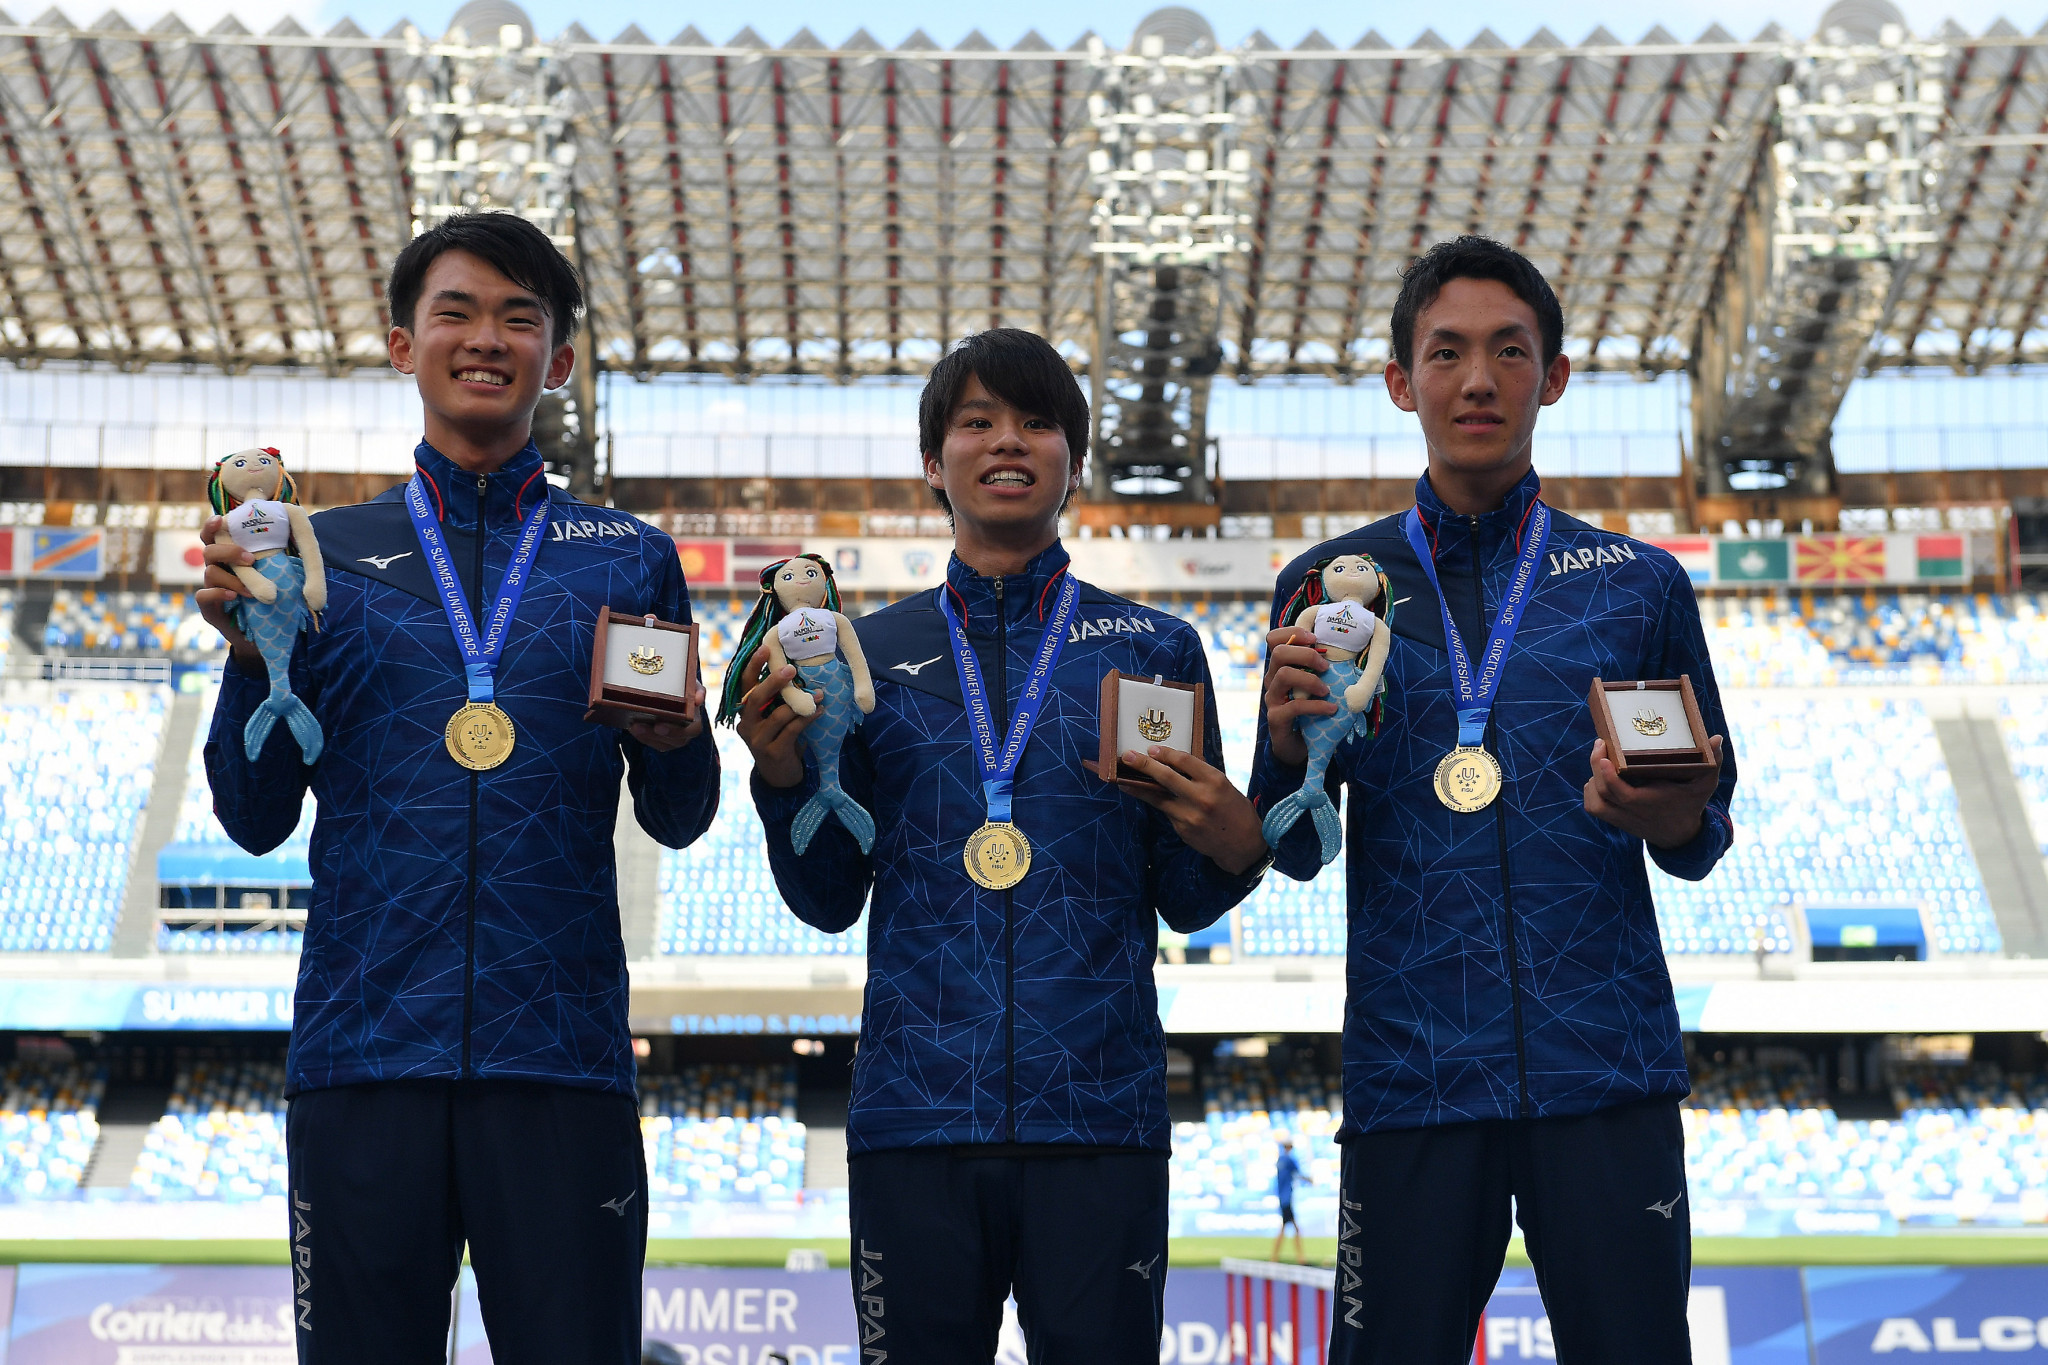 Japan secured a one-two-three finish in the men's 20km walk en route to the men's team Universiade title ©Naples 2019